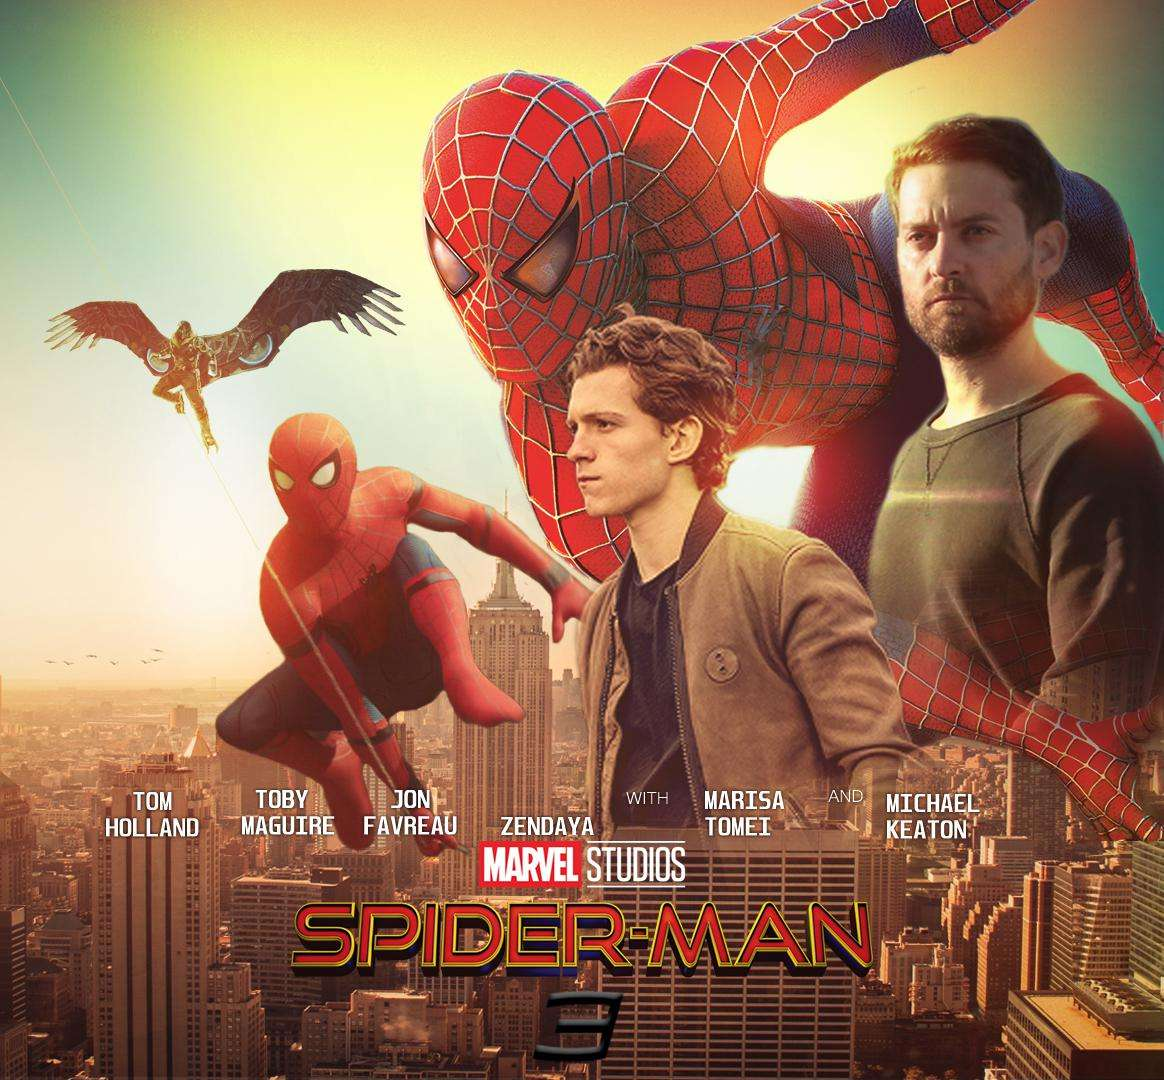 Spider-Man 3 (2021) welcomes Tobey Maguire and Andrew Garfield